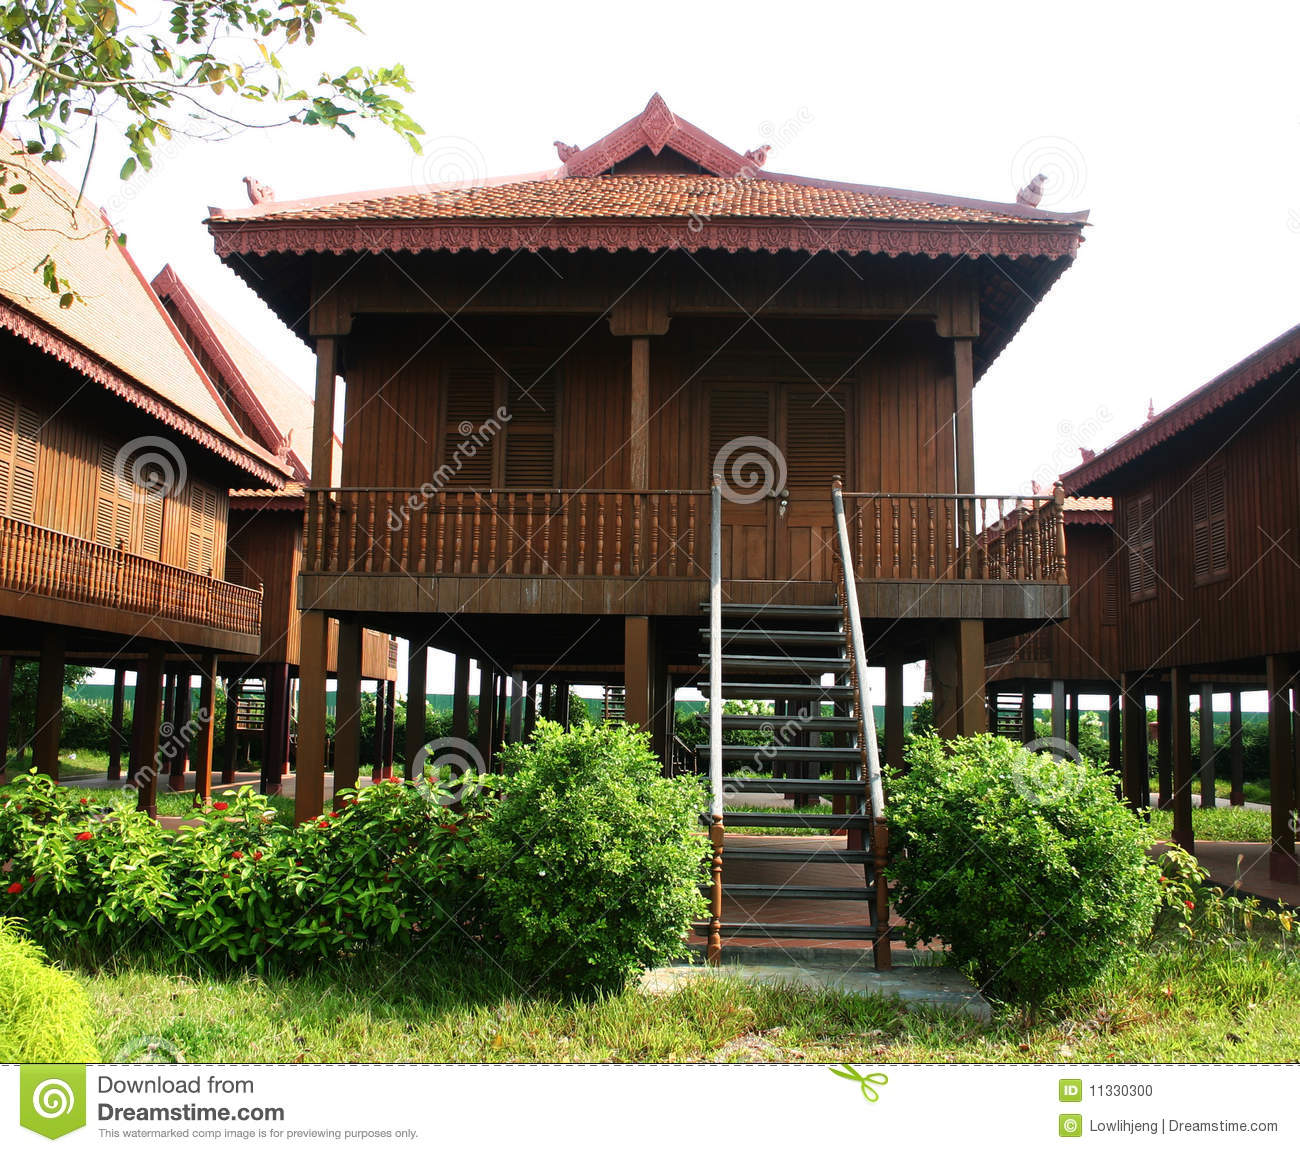 Maison en bois cambodgienne traditionnelle photo stock for Maison tradition